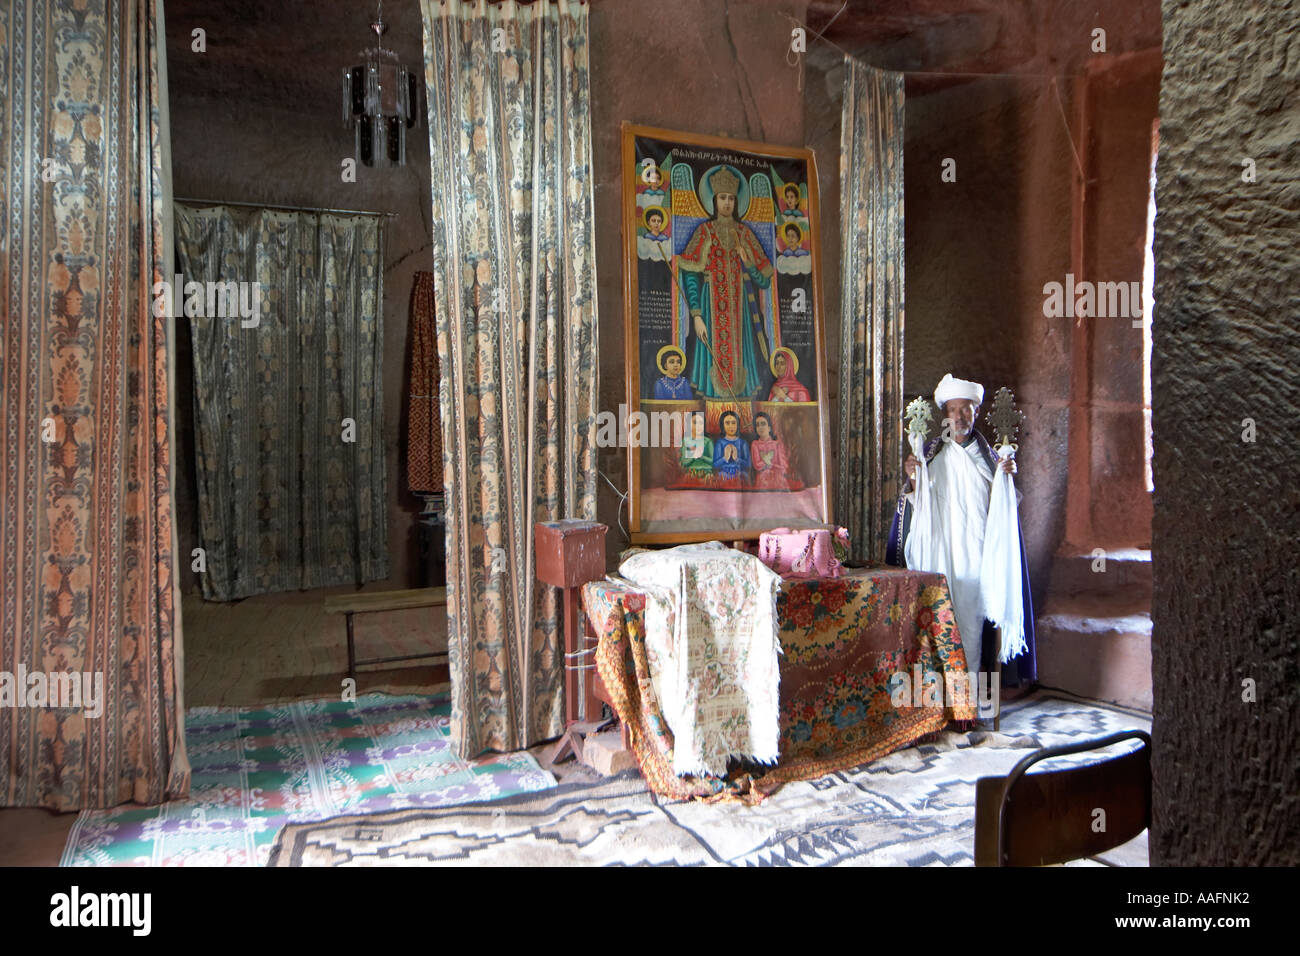 Curtains Ideas curtain paintings : Priest With Cross Curtain Drapes And Paintings In Bet Gabriel ...